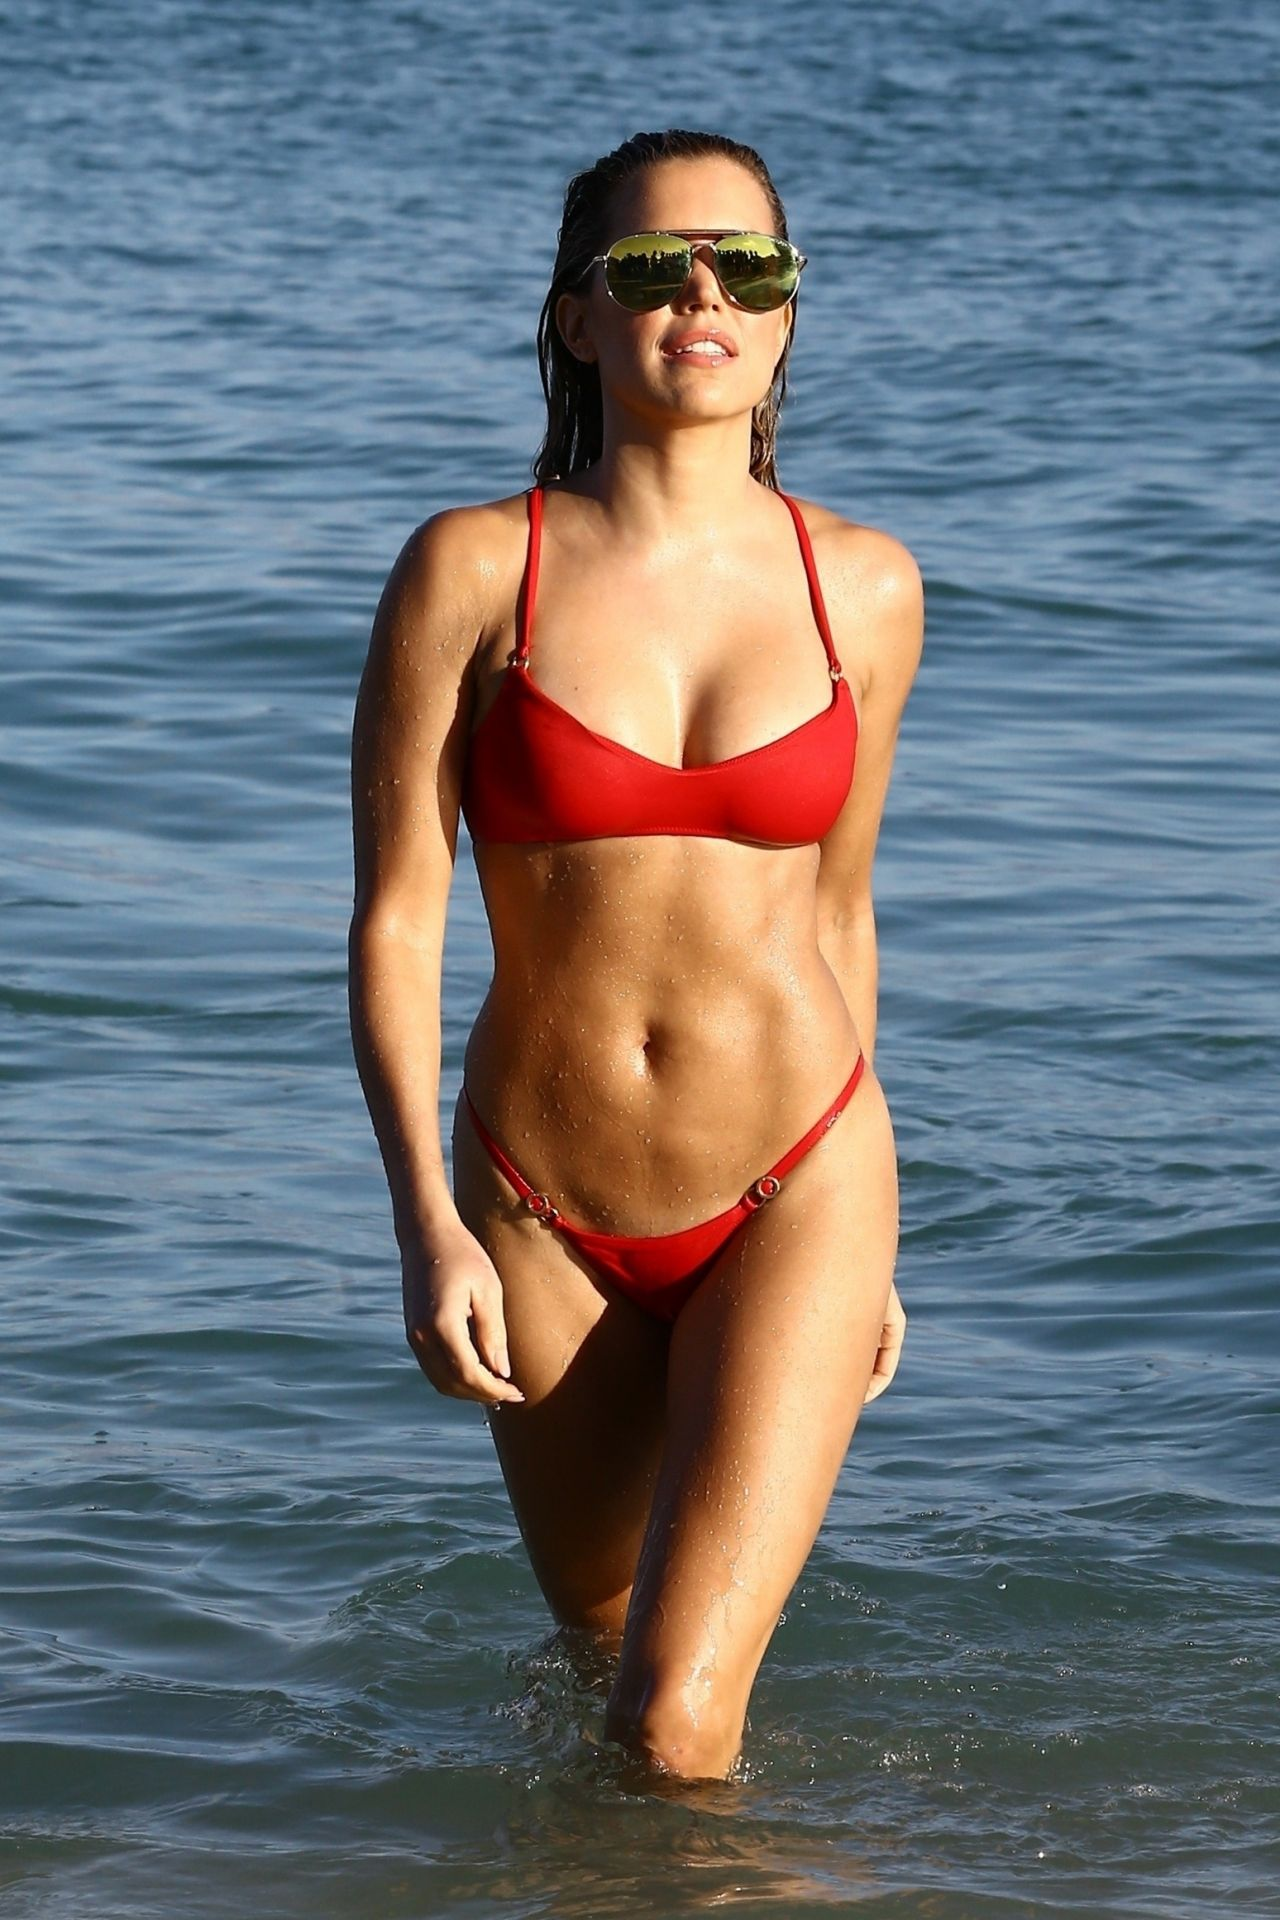 Sylvie Meis in Red Bikini on the beach in Miami Pic 2 of 35